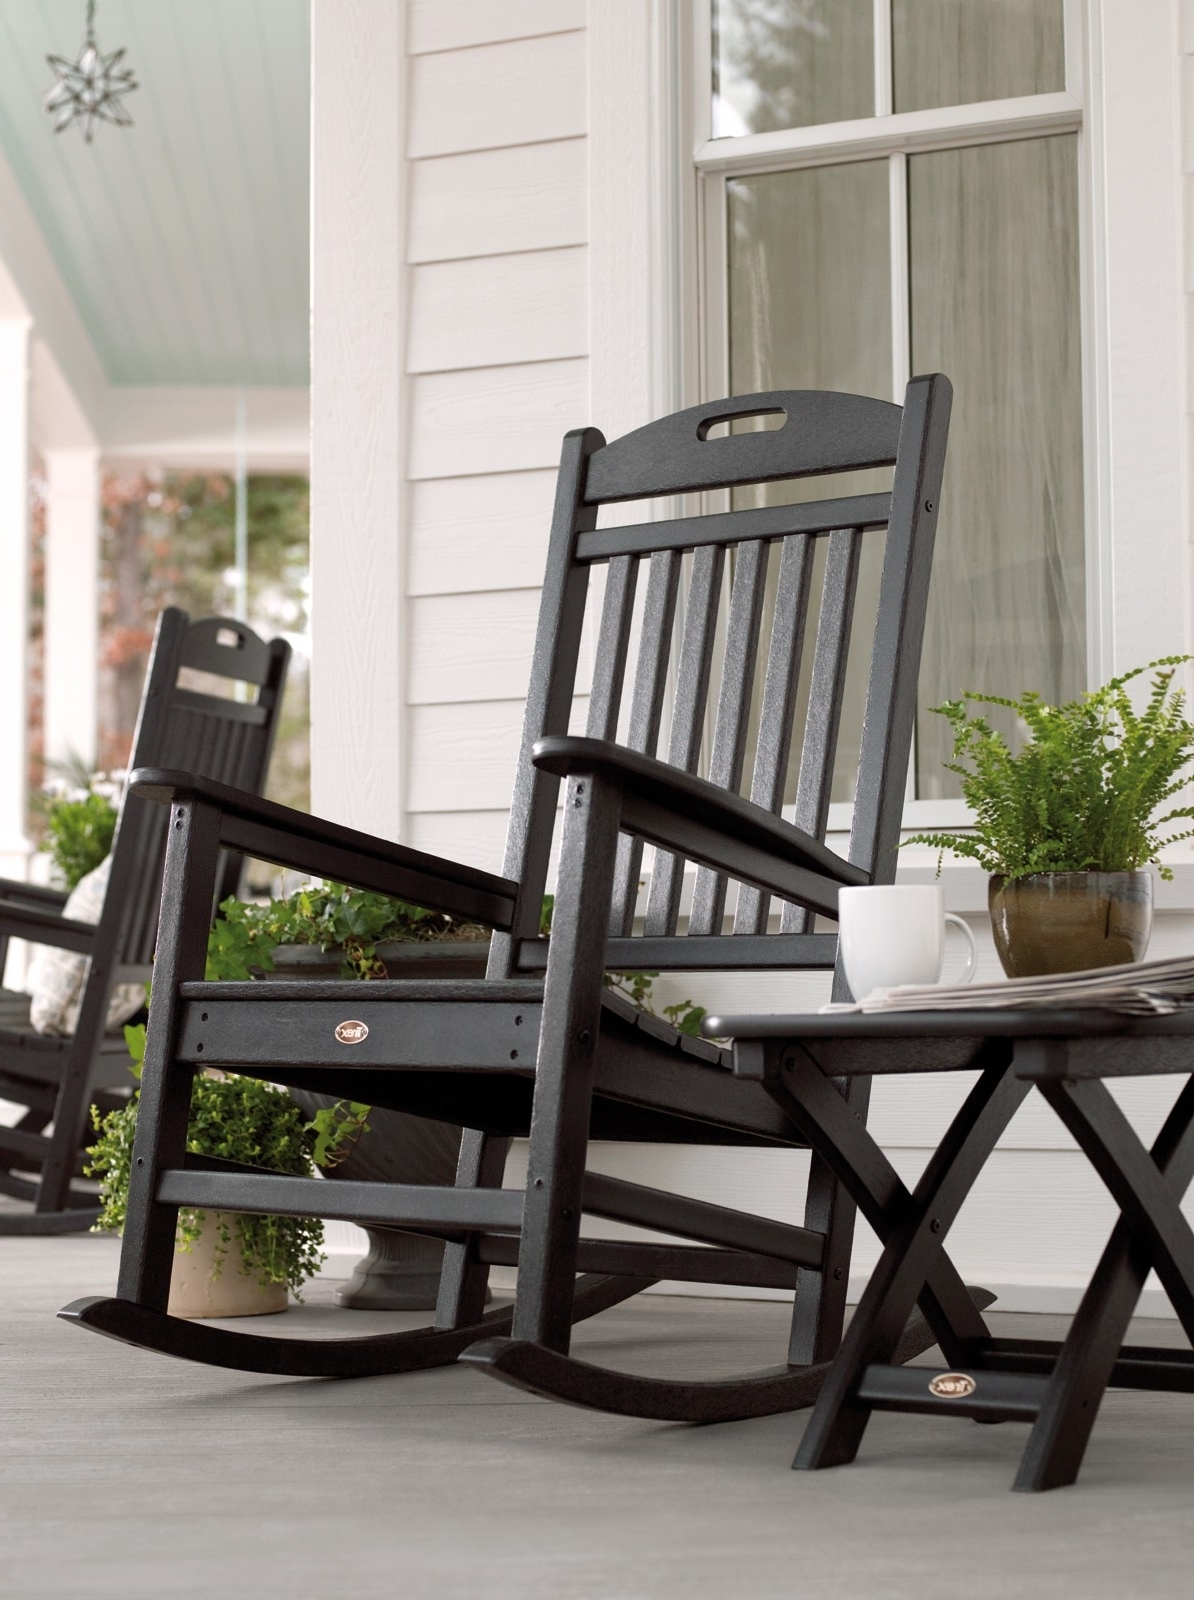 Modern Patio Rocking Chairs For Most Recently Released Furniture : Target Wooden Outdoor Rocking Chairs Black Canada Home (View 8 of 20)